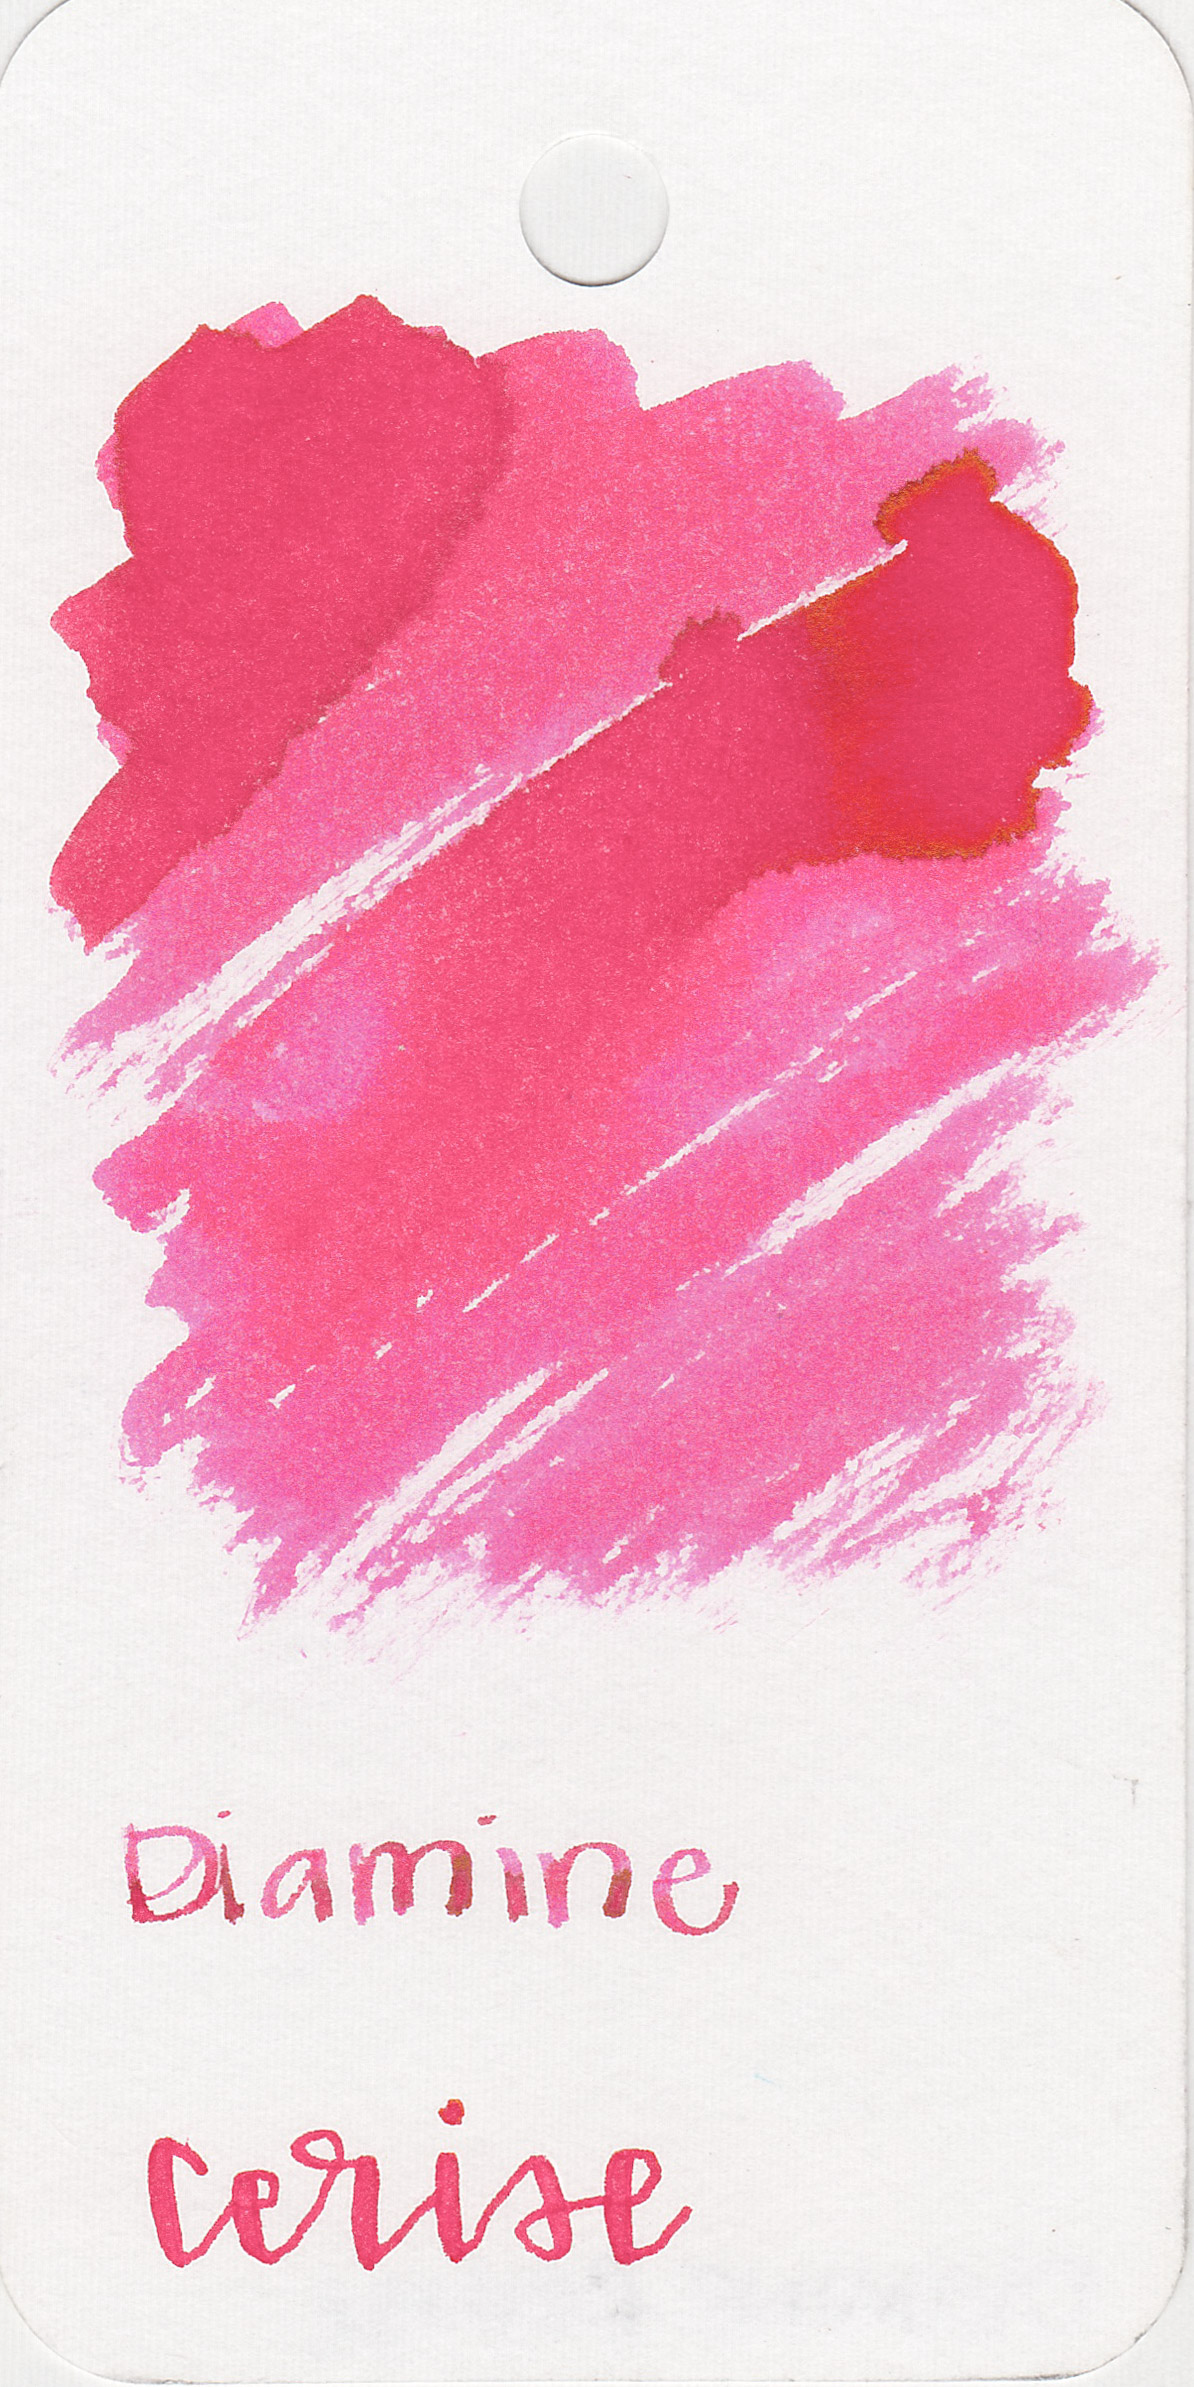 The color: - Cerise is a bright, medium pink.